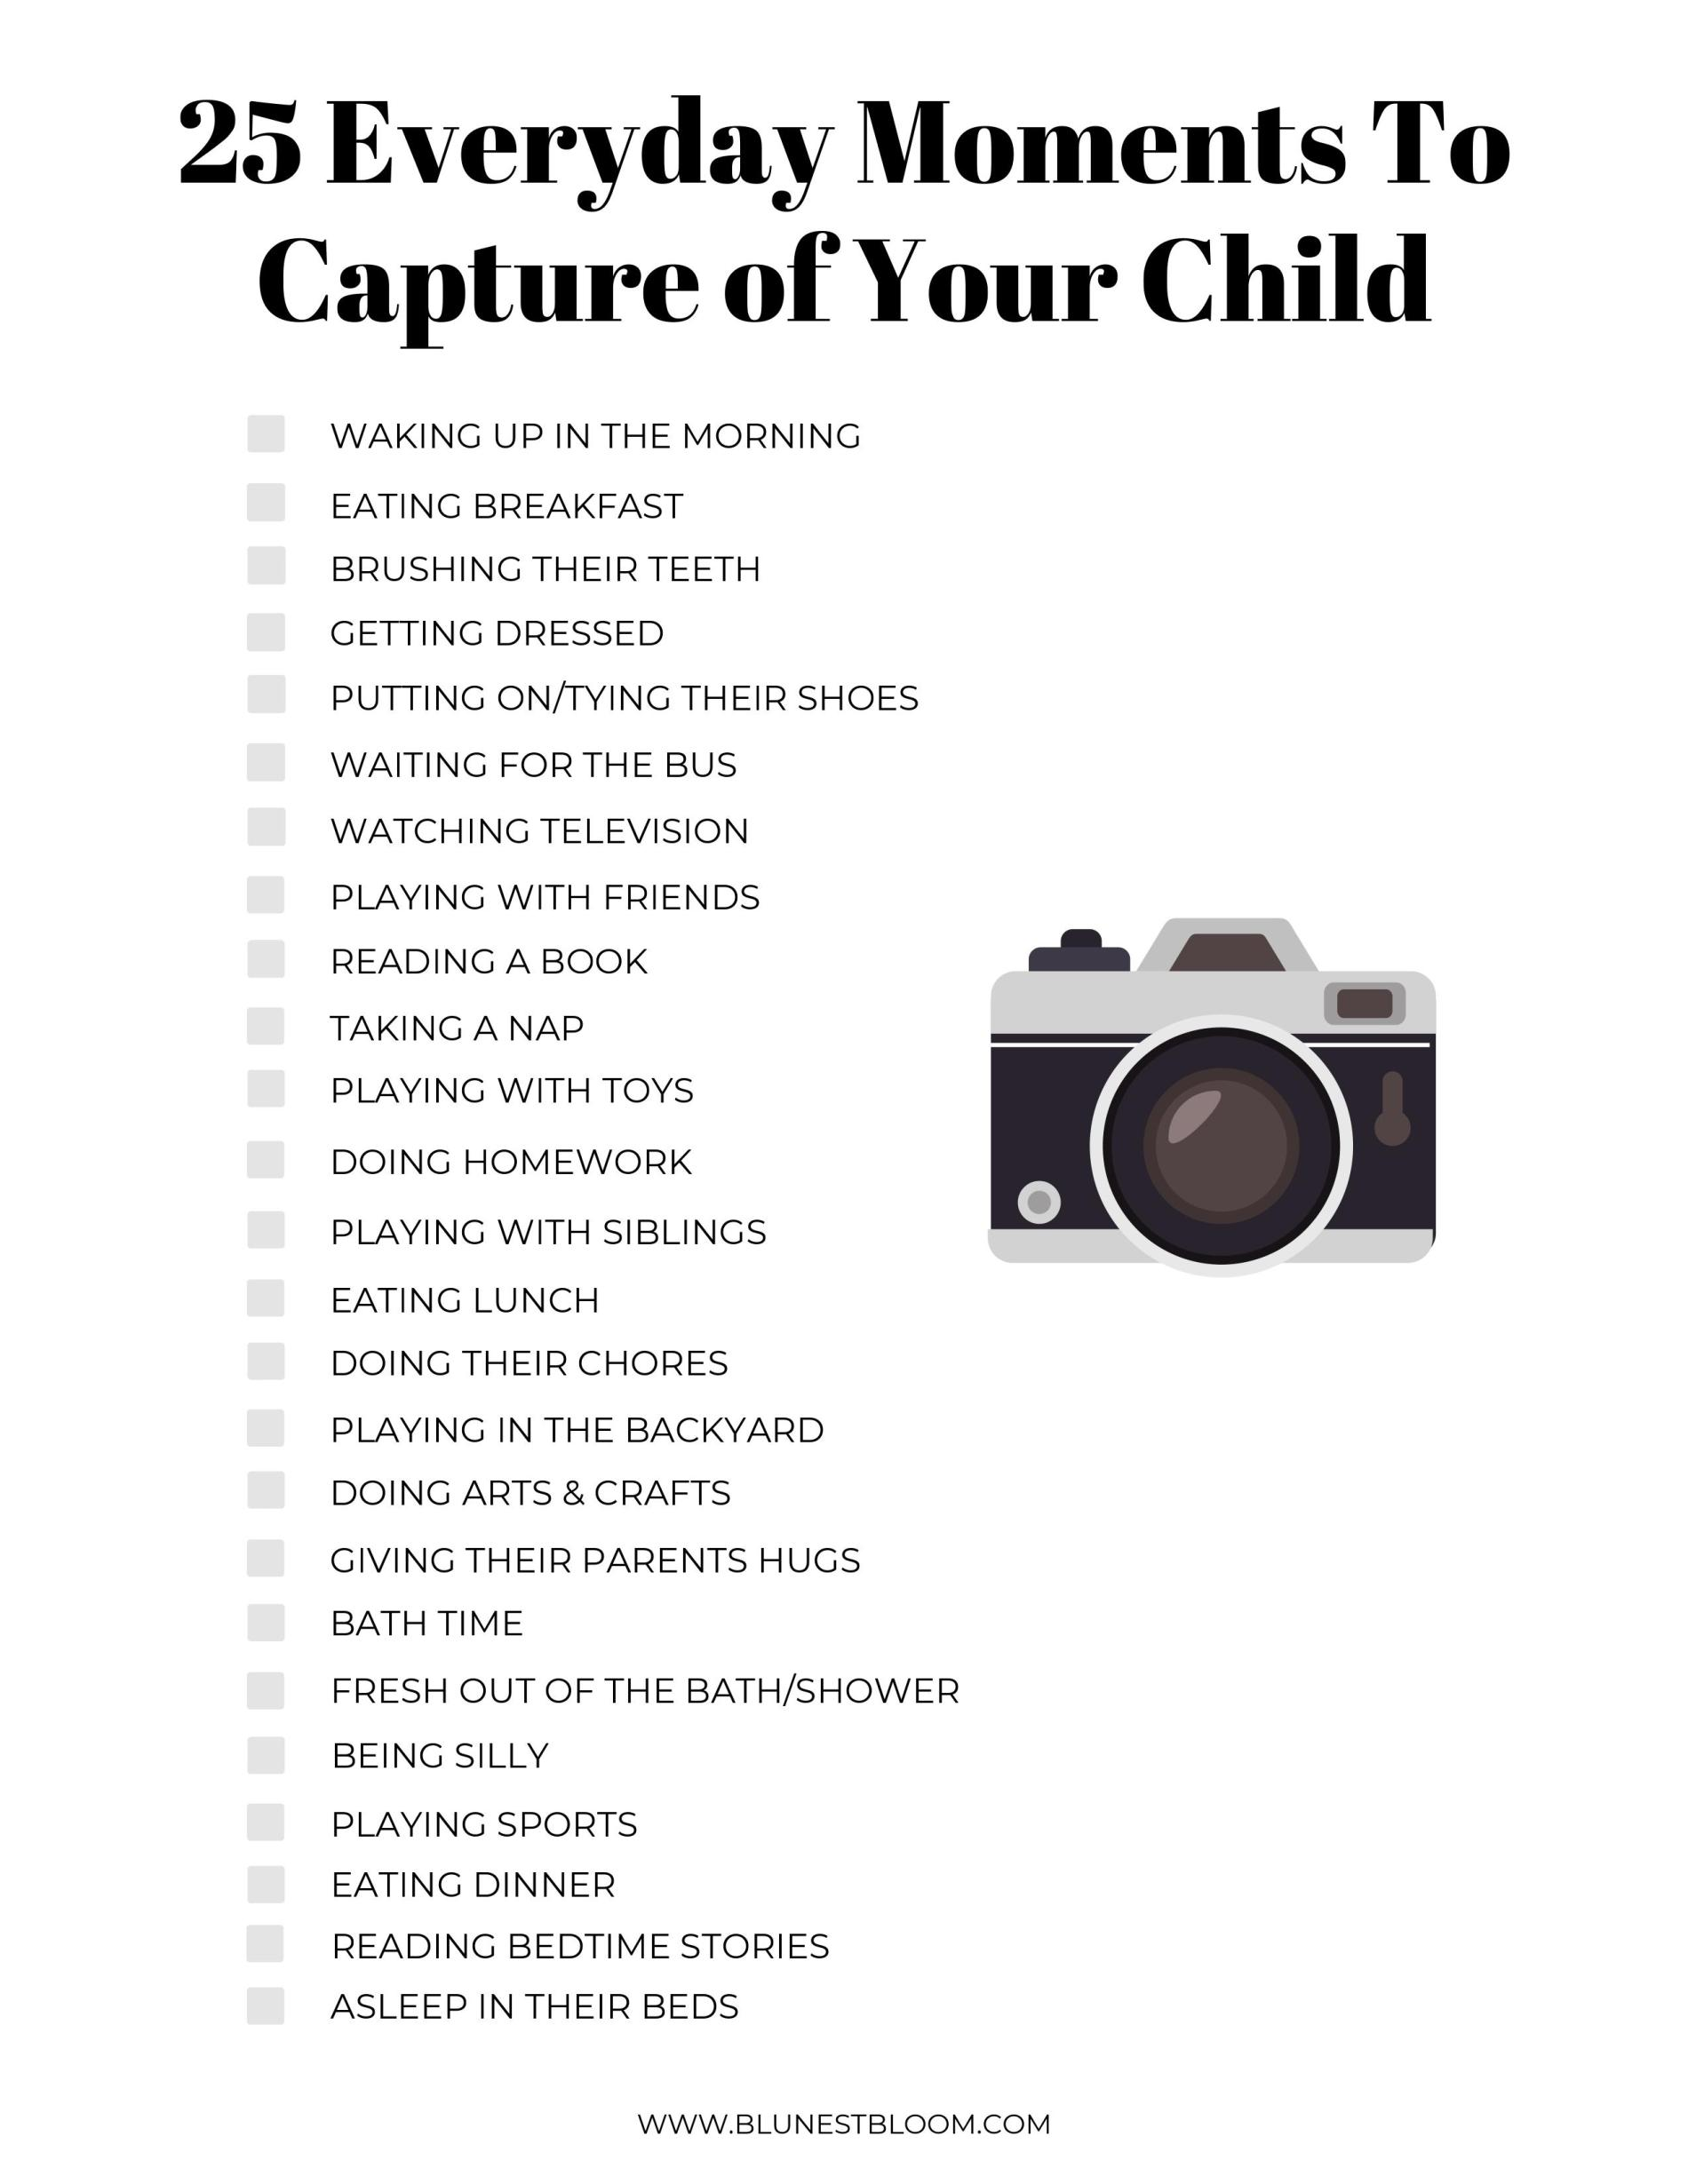 25 Everyday Moments to Capture of Your Child